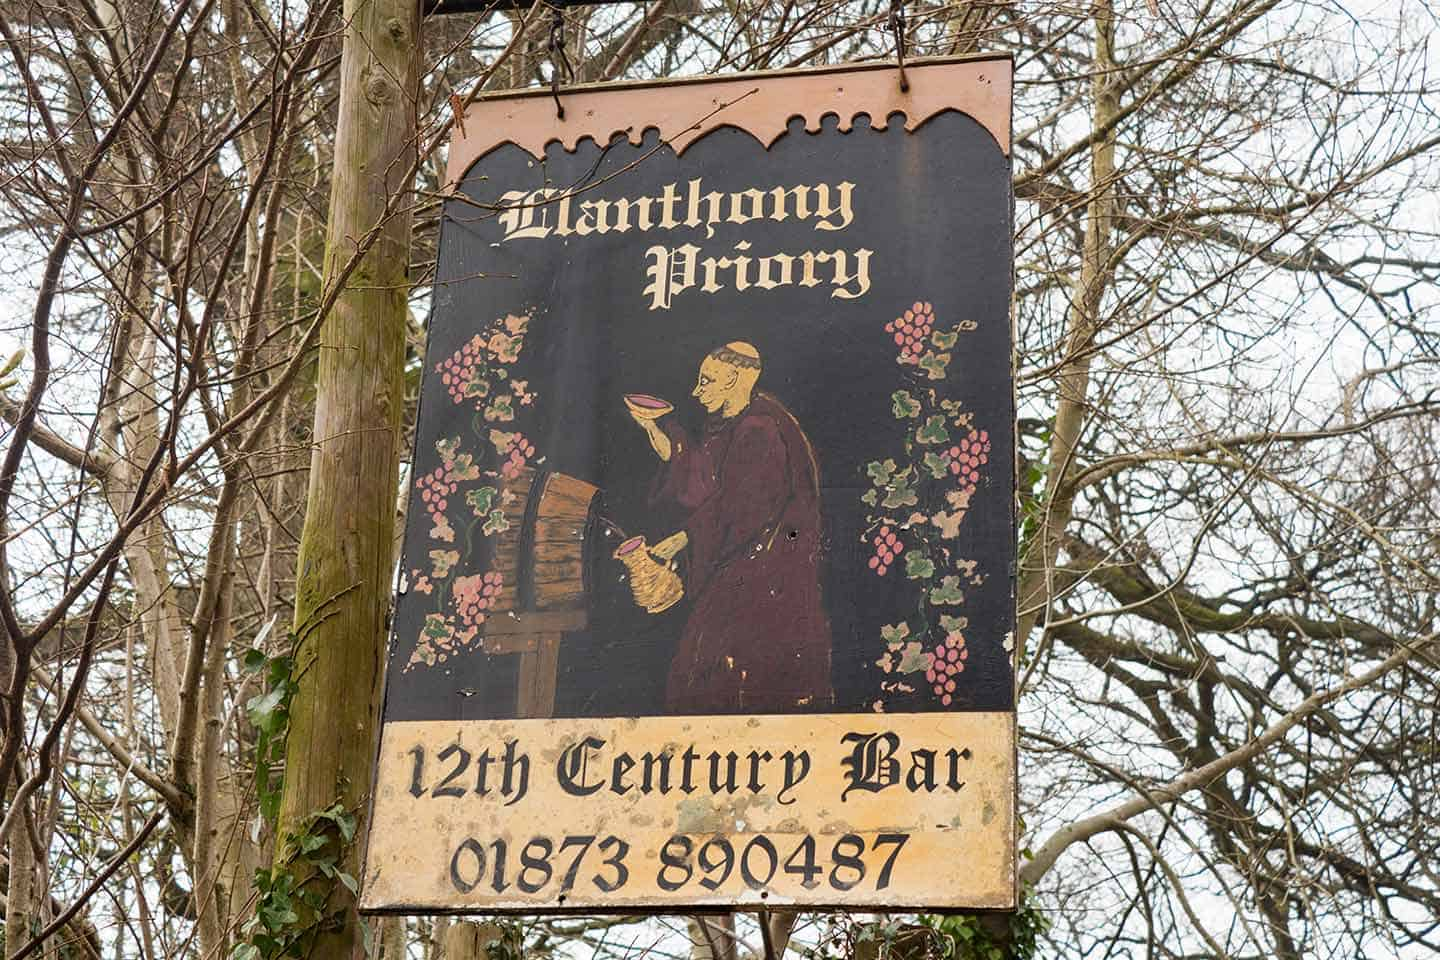 Image of Llanthony Priory Bar sign